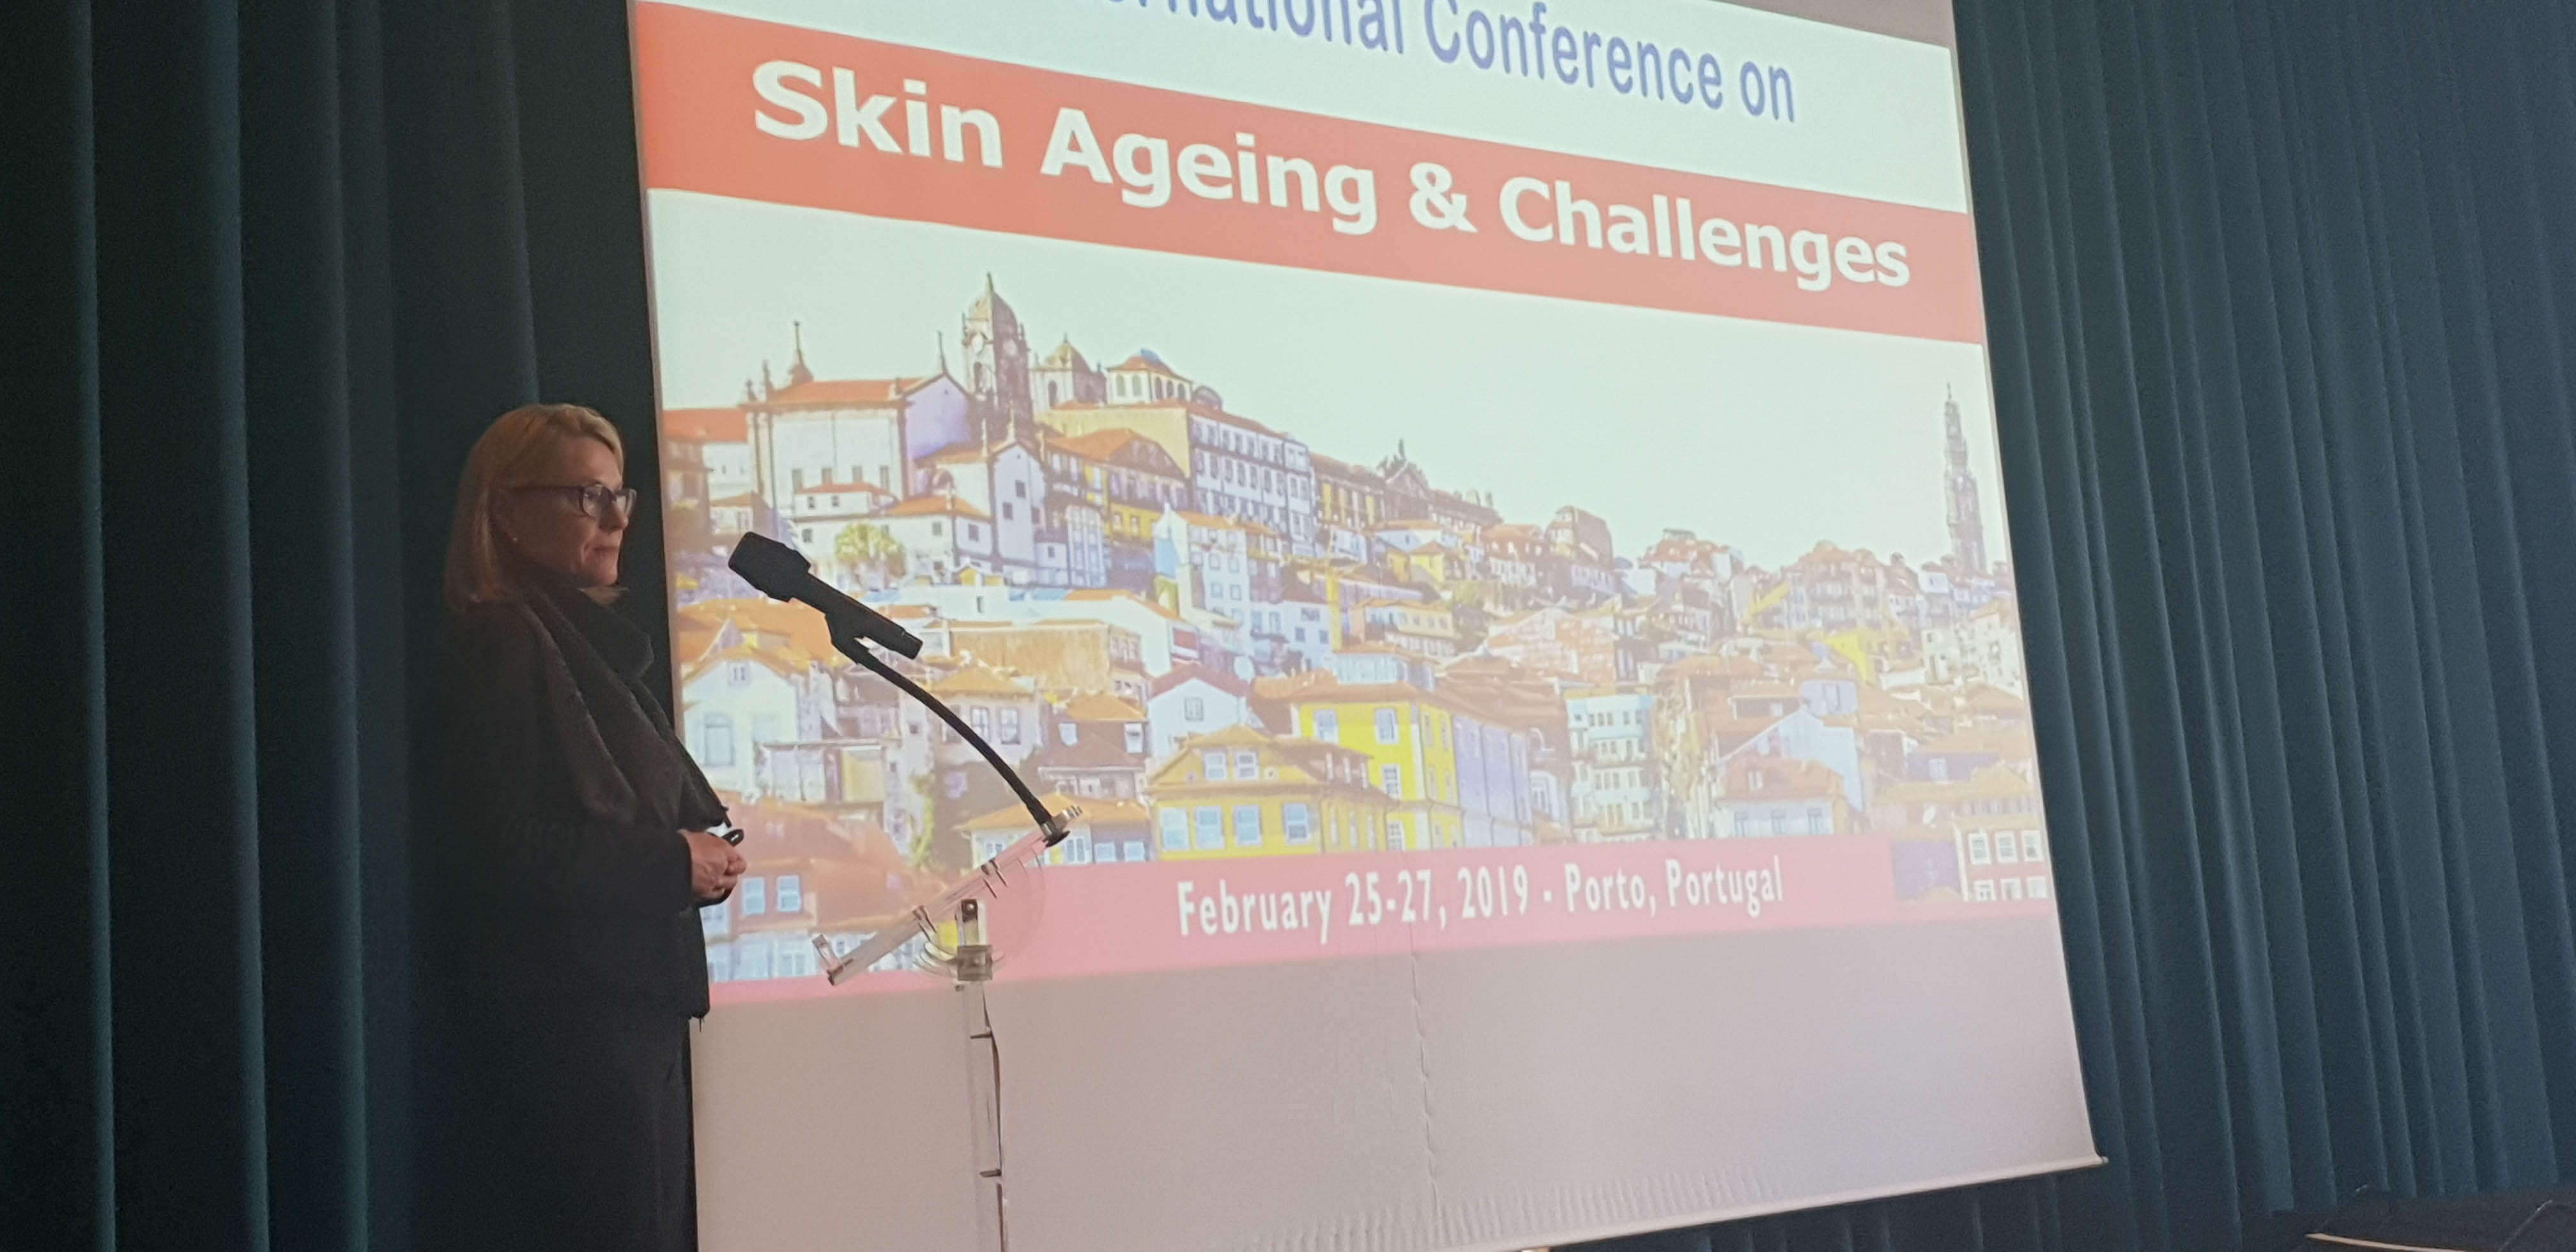 Skin Ageing Challenges 2019 Photo-19